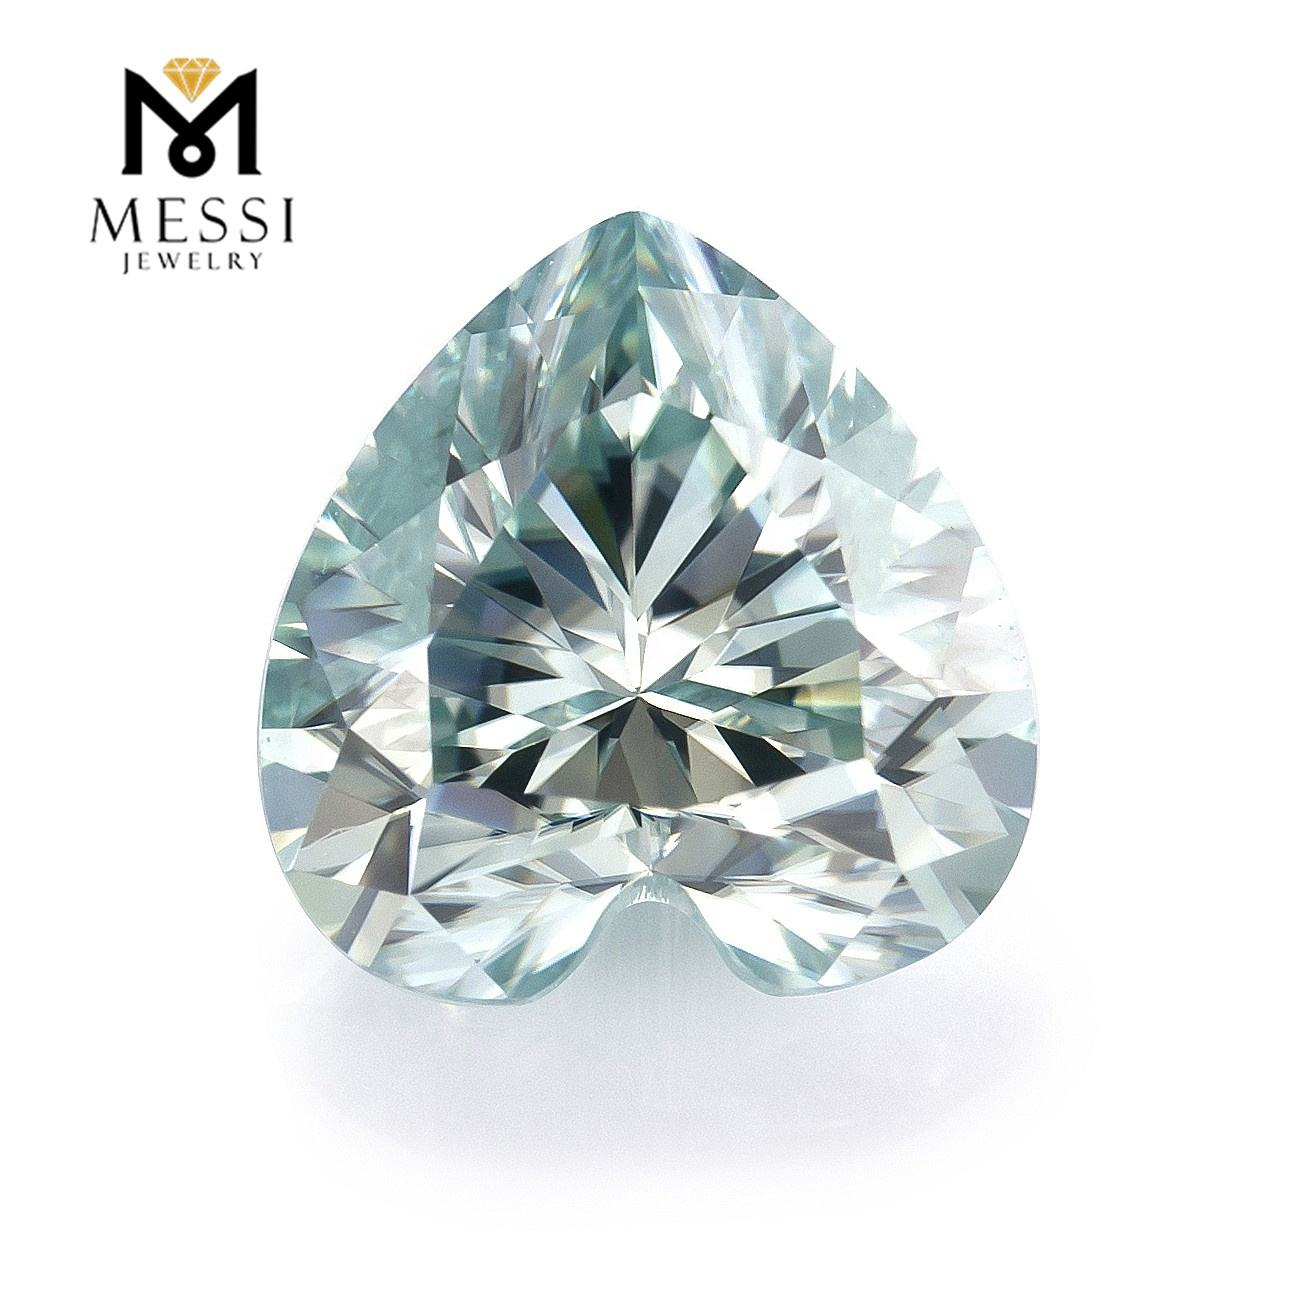 Messi Jewelry Light Blue Moissanite Gemstones For Making 8x8mm Heart Shape Loose Polished Stone